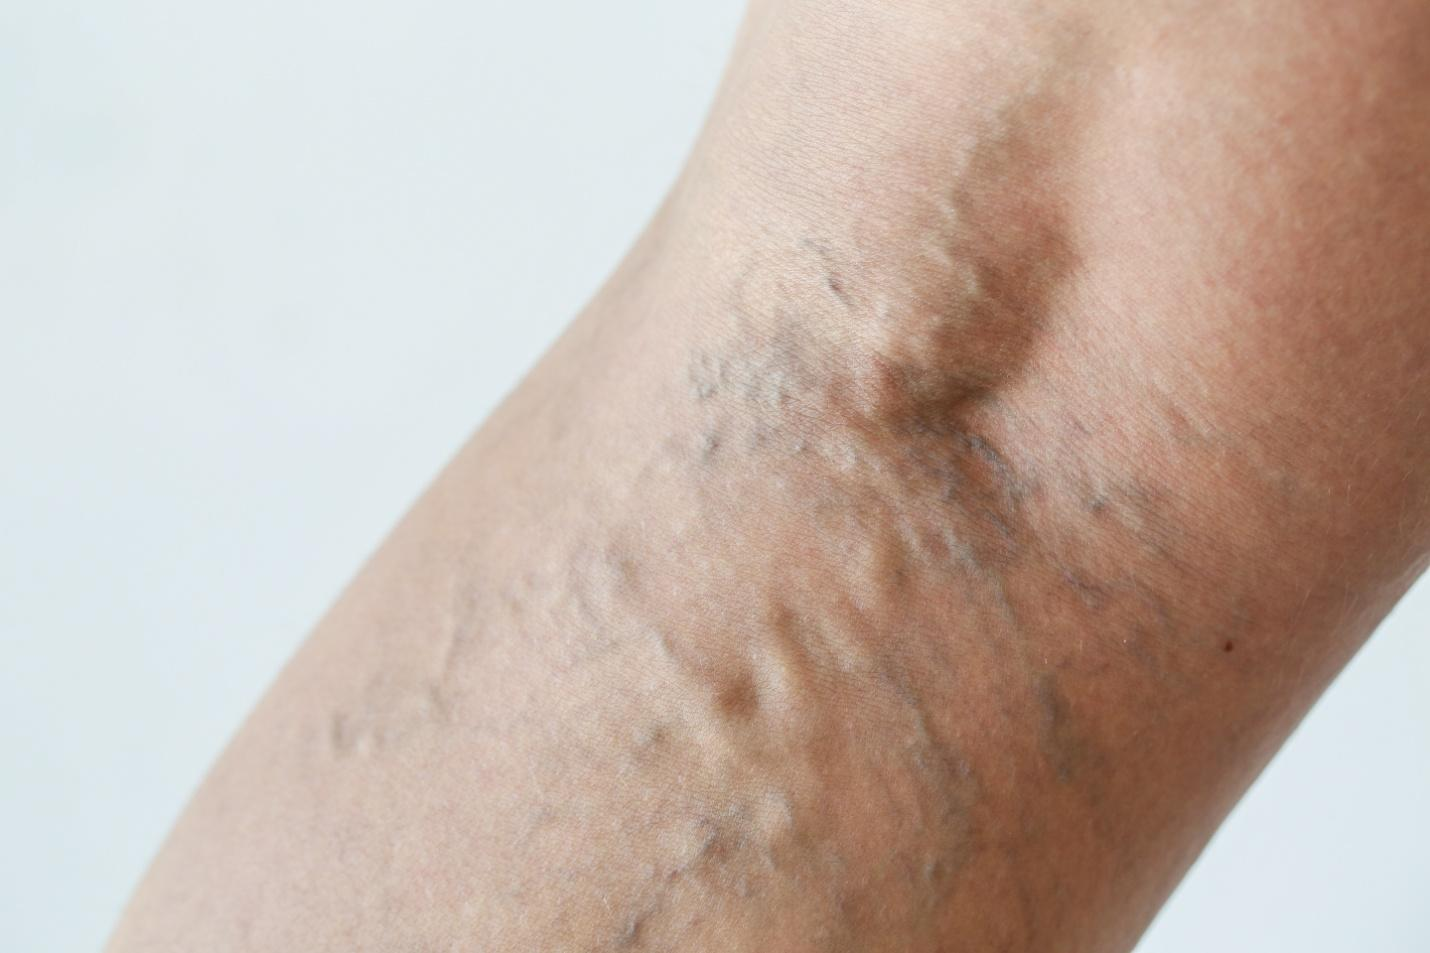 Is Varicose Vein Treatment Necessary? Swelling May Be Due To Another Reason